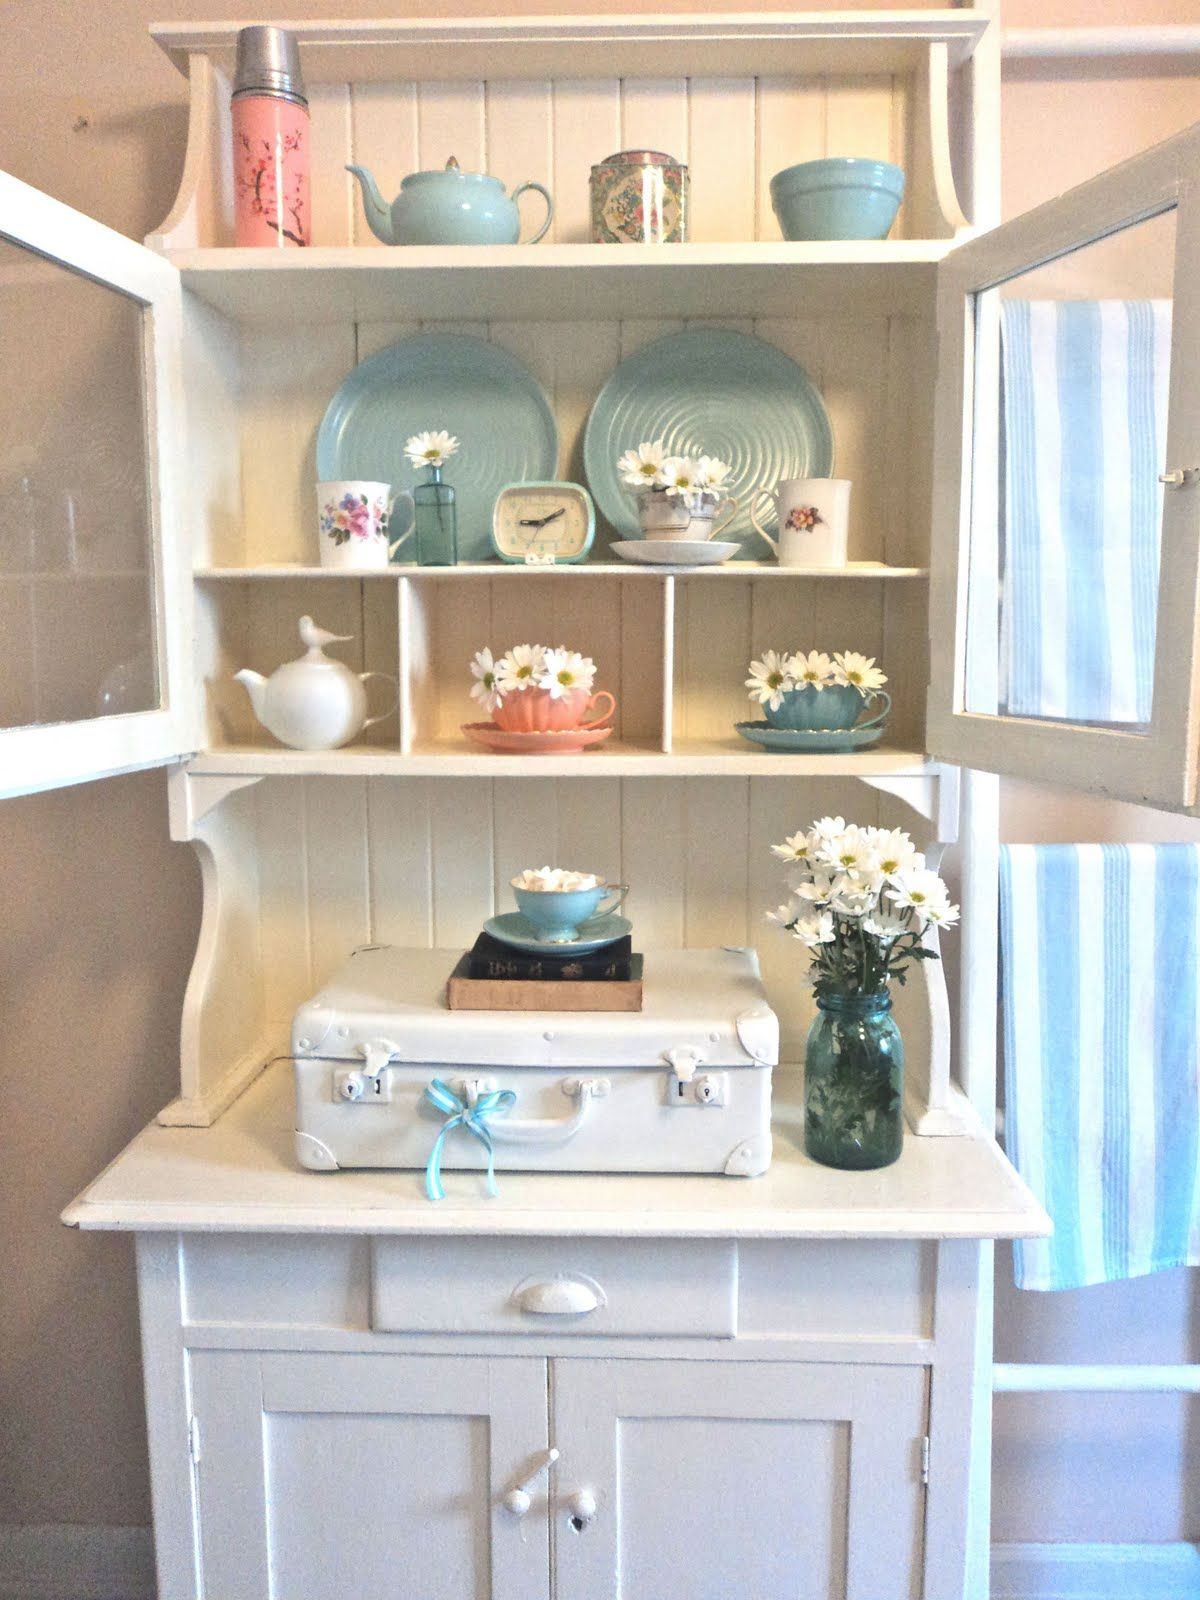 excellent tips to give your home a new look home decor design rh pinterest com